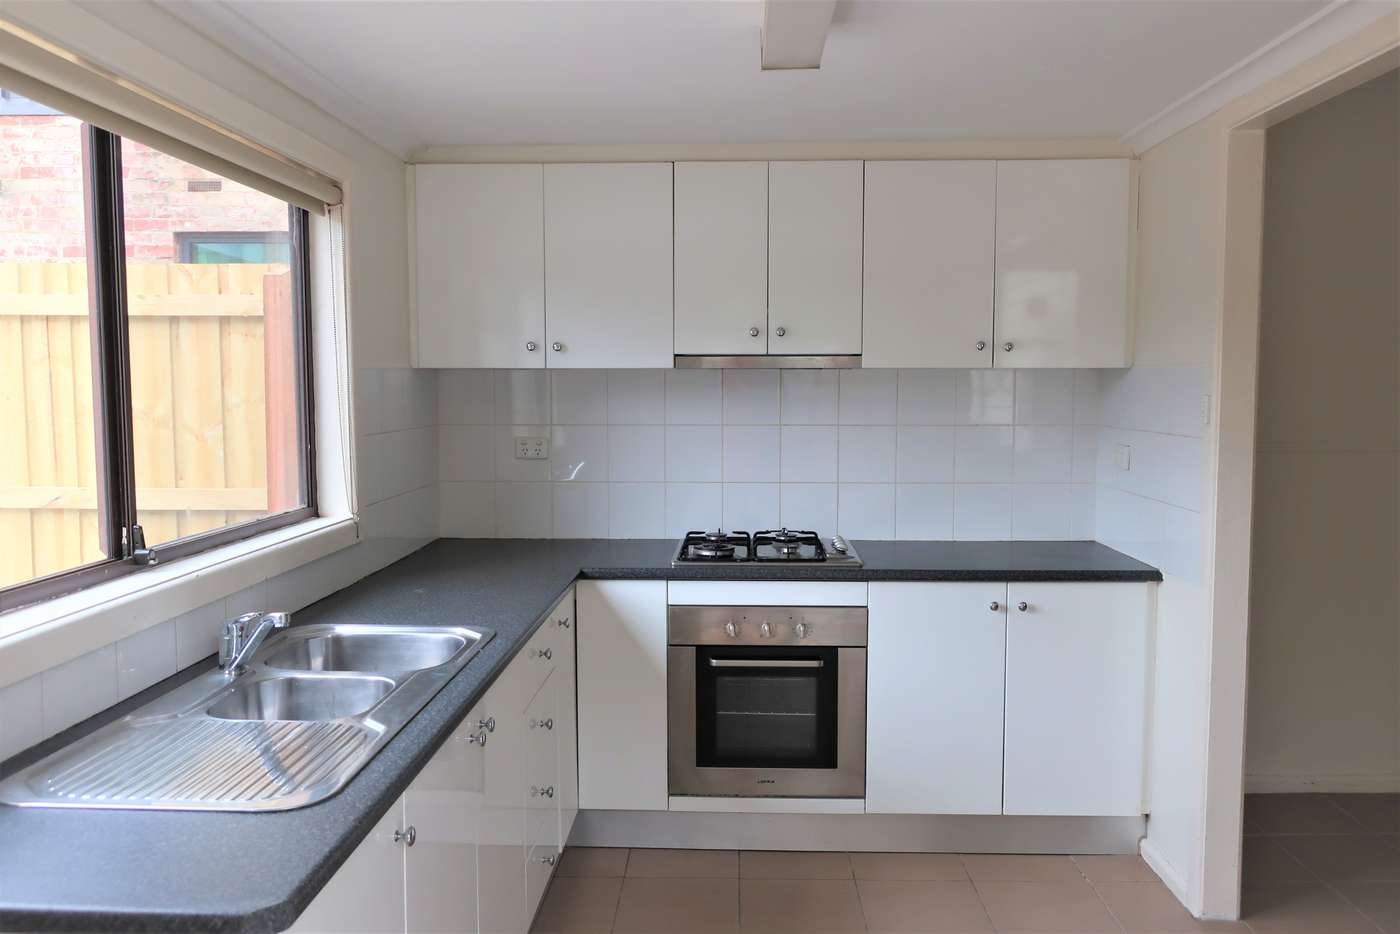 Seventh view of Homely house listing, 99 Ogrady Street, Clifton Hill VIC 3068